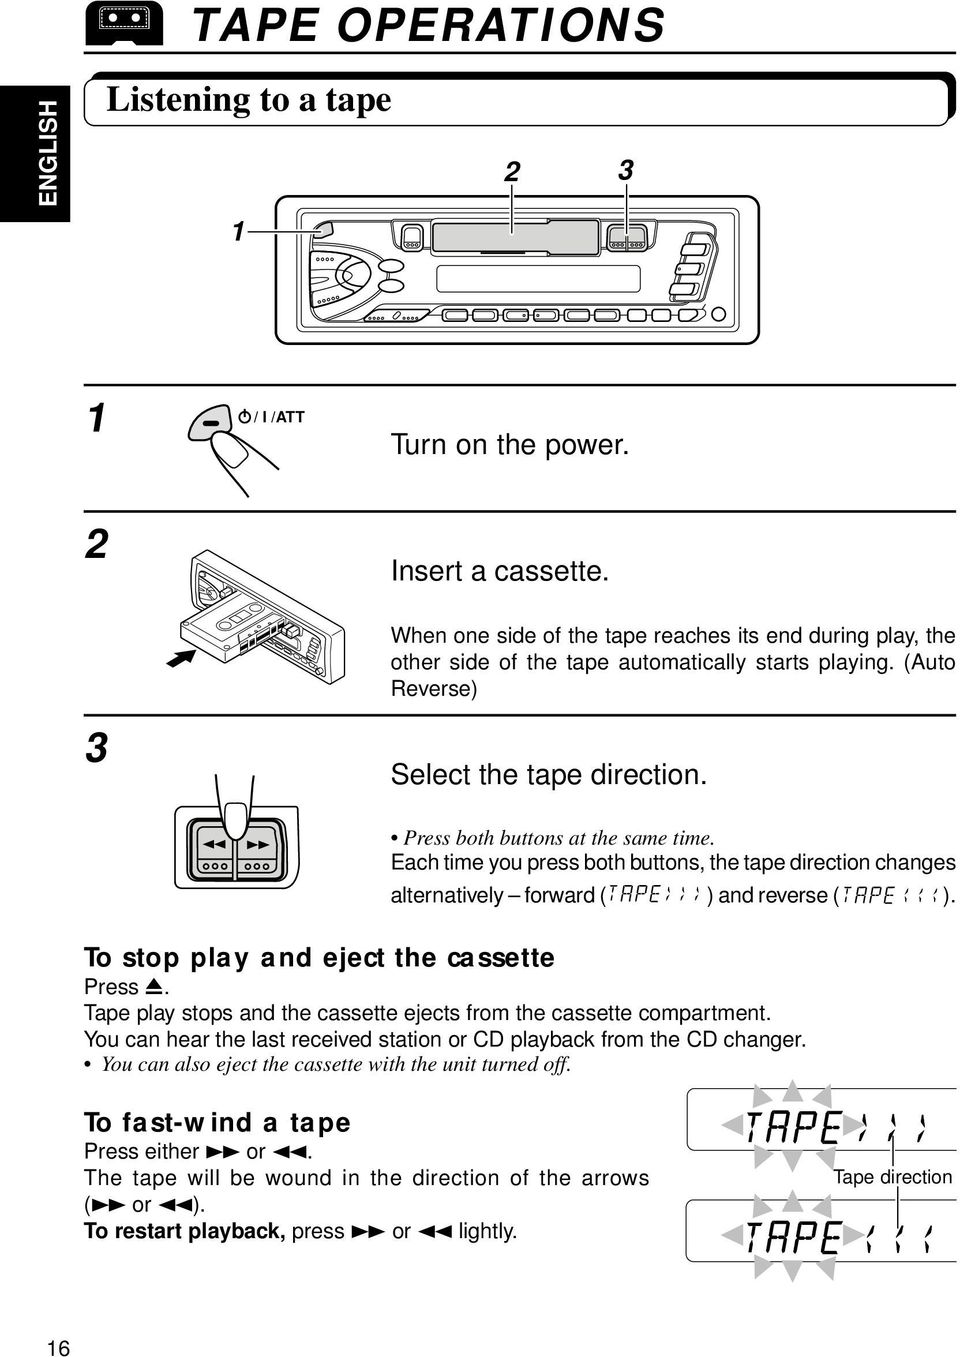 To stop play and eject the cassette Press 0. Tape play stops and the cassette ejects from the cassette compartment. You can hear the last received station or CD playback from the CD changer.